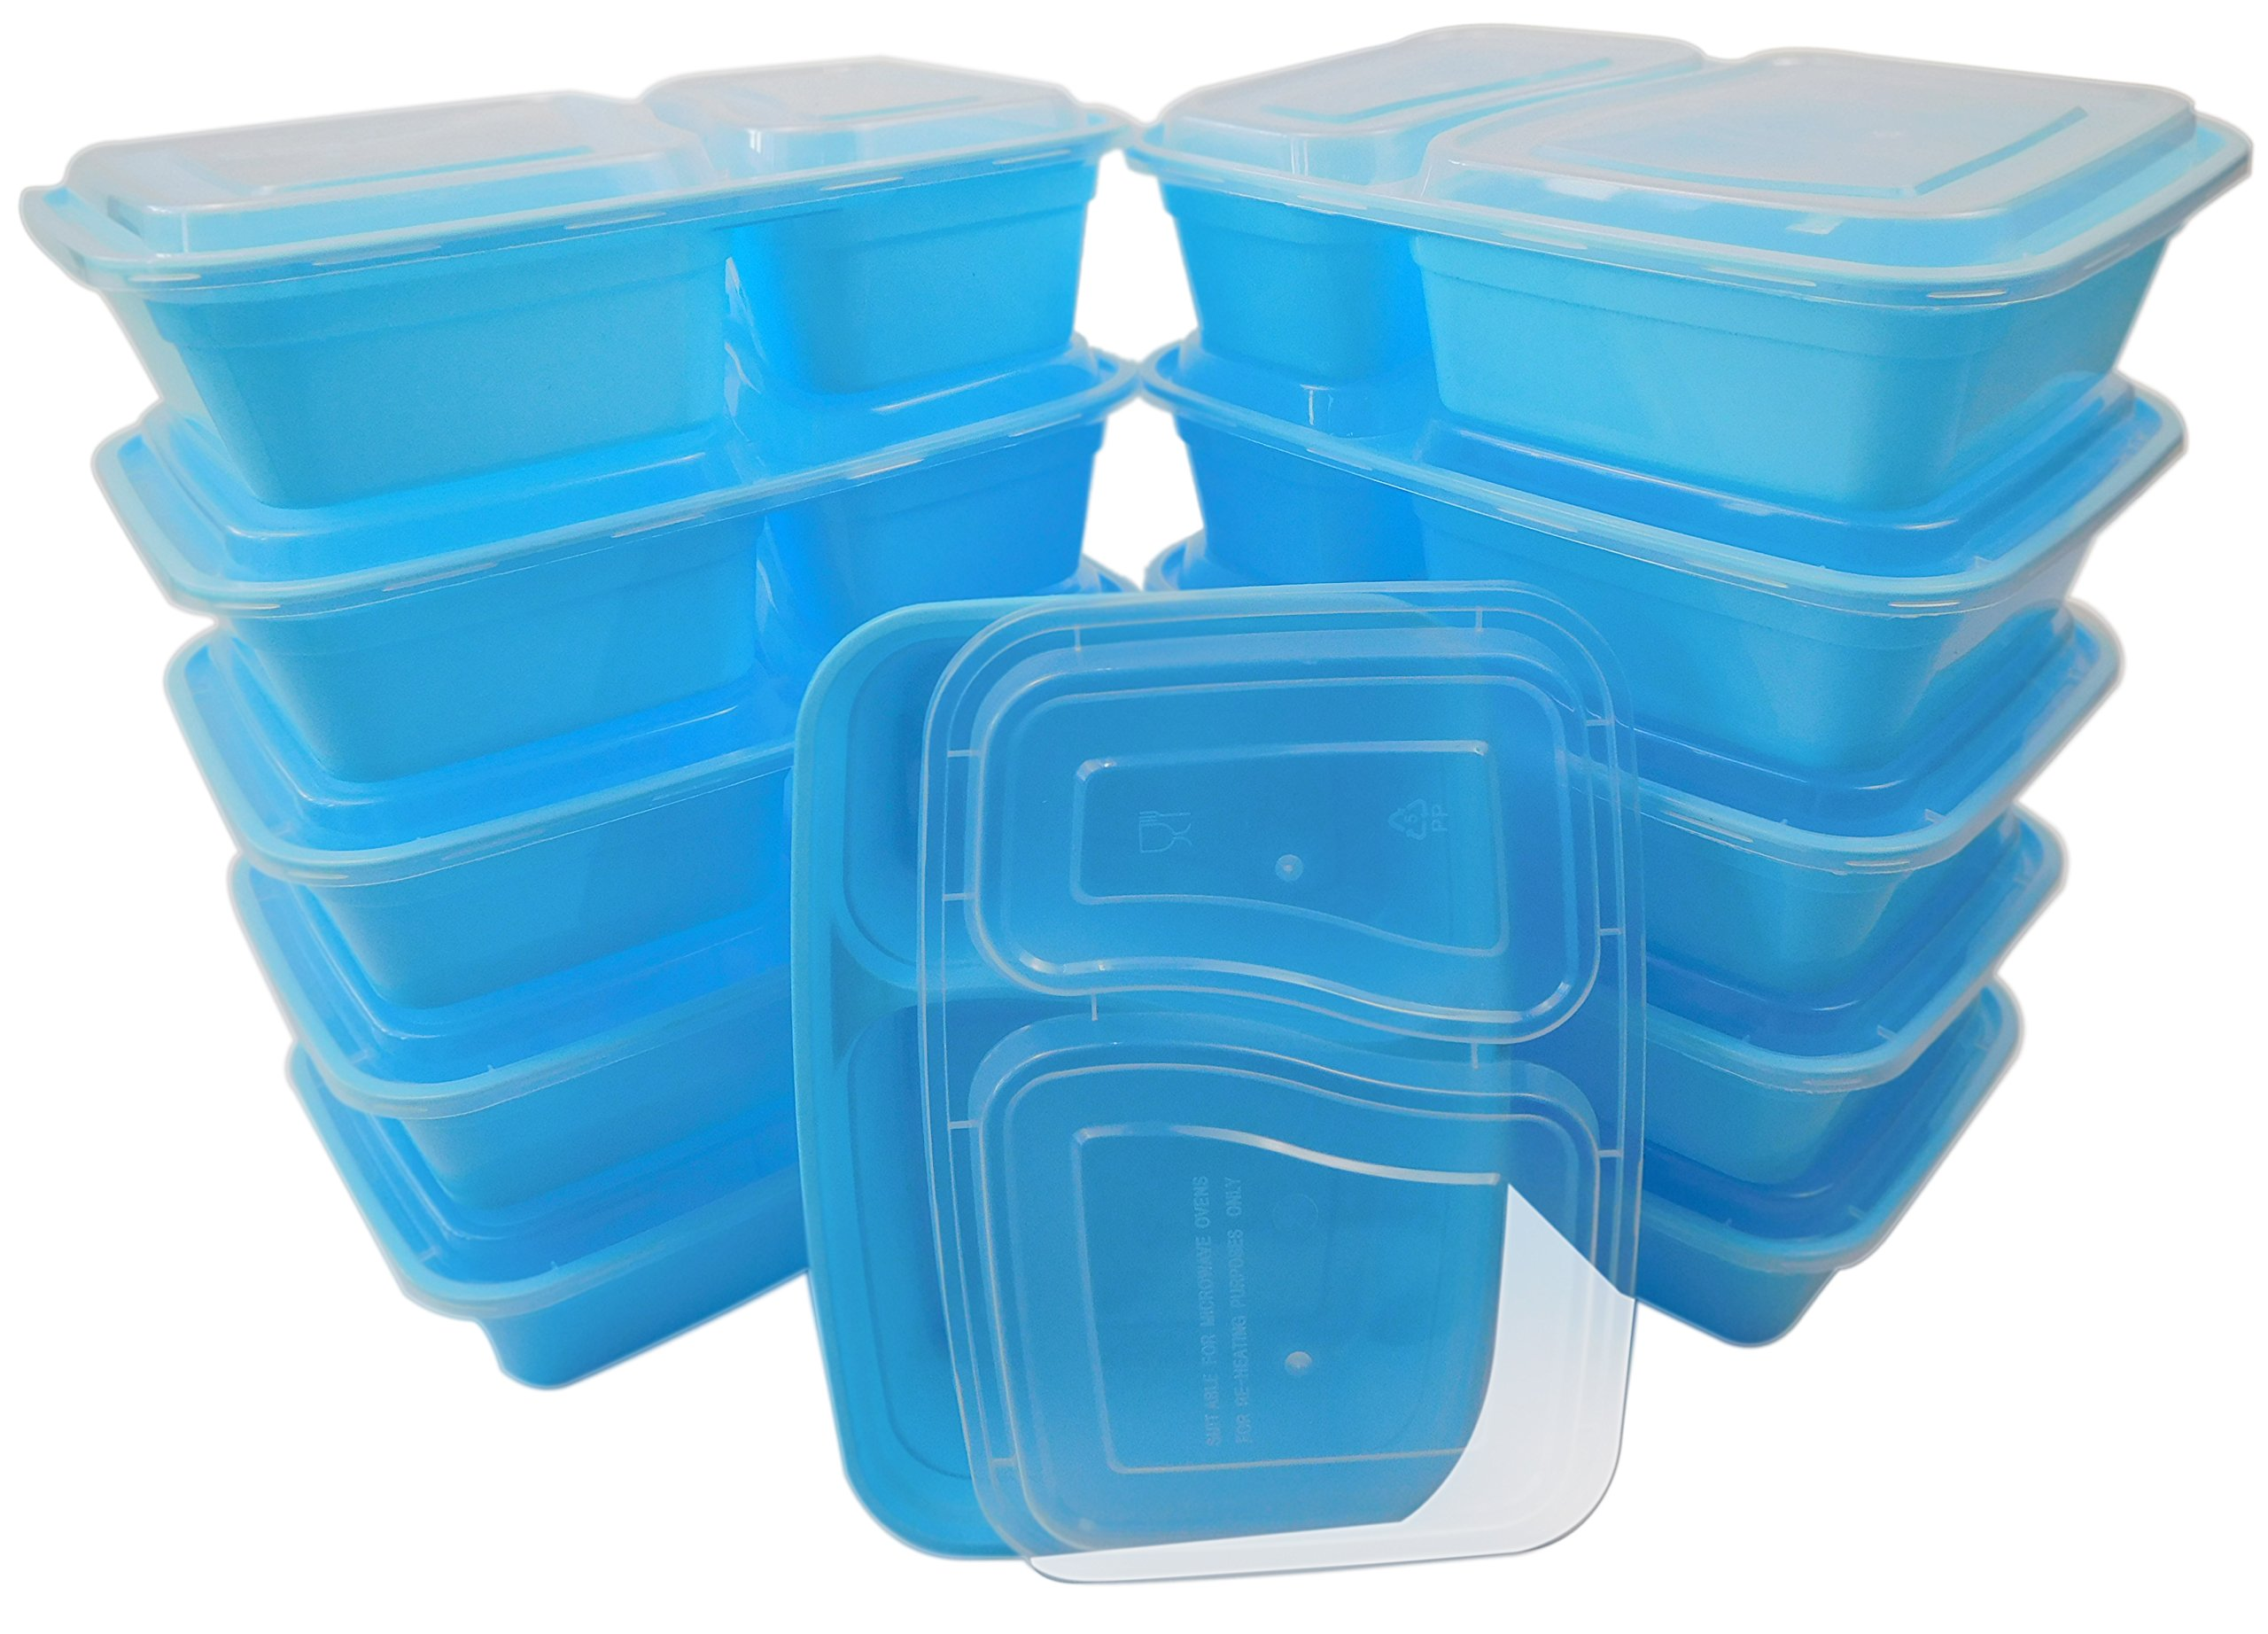 Table To Go 300-Pack Bento Lunch Boxes with Lids (2 Compartment/ 32 oz) | Microwaveable, Dishwasher & Freezer Safe Meal Prep Containers | Reusable Dish Set for Prepping, Portion Control & More (Blue)